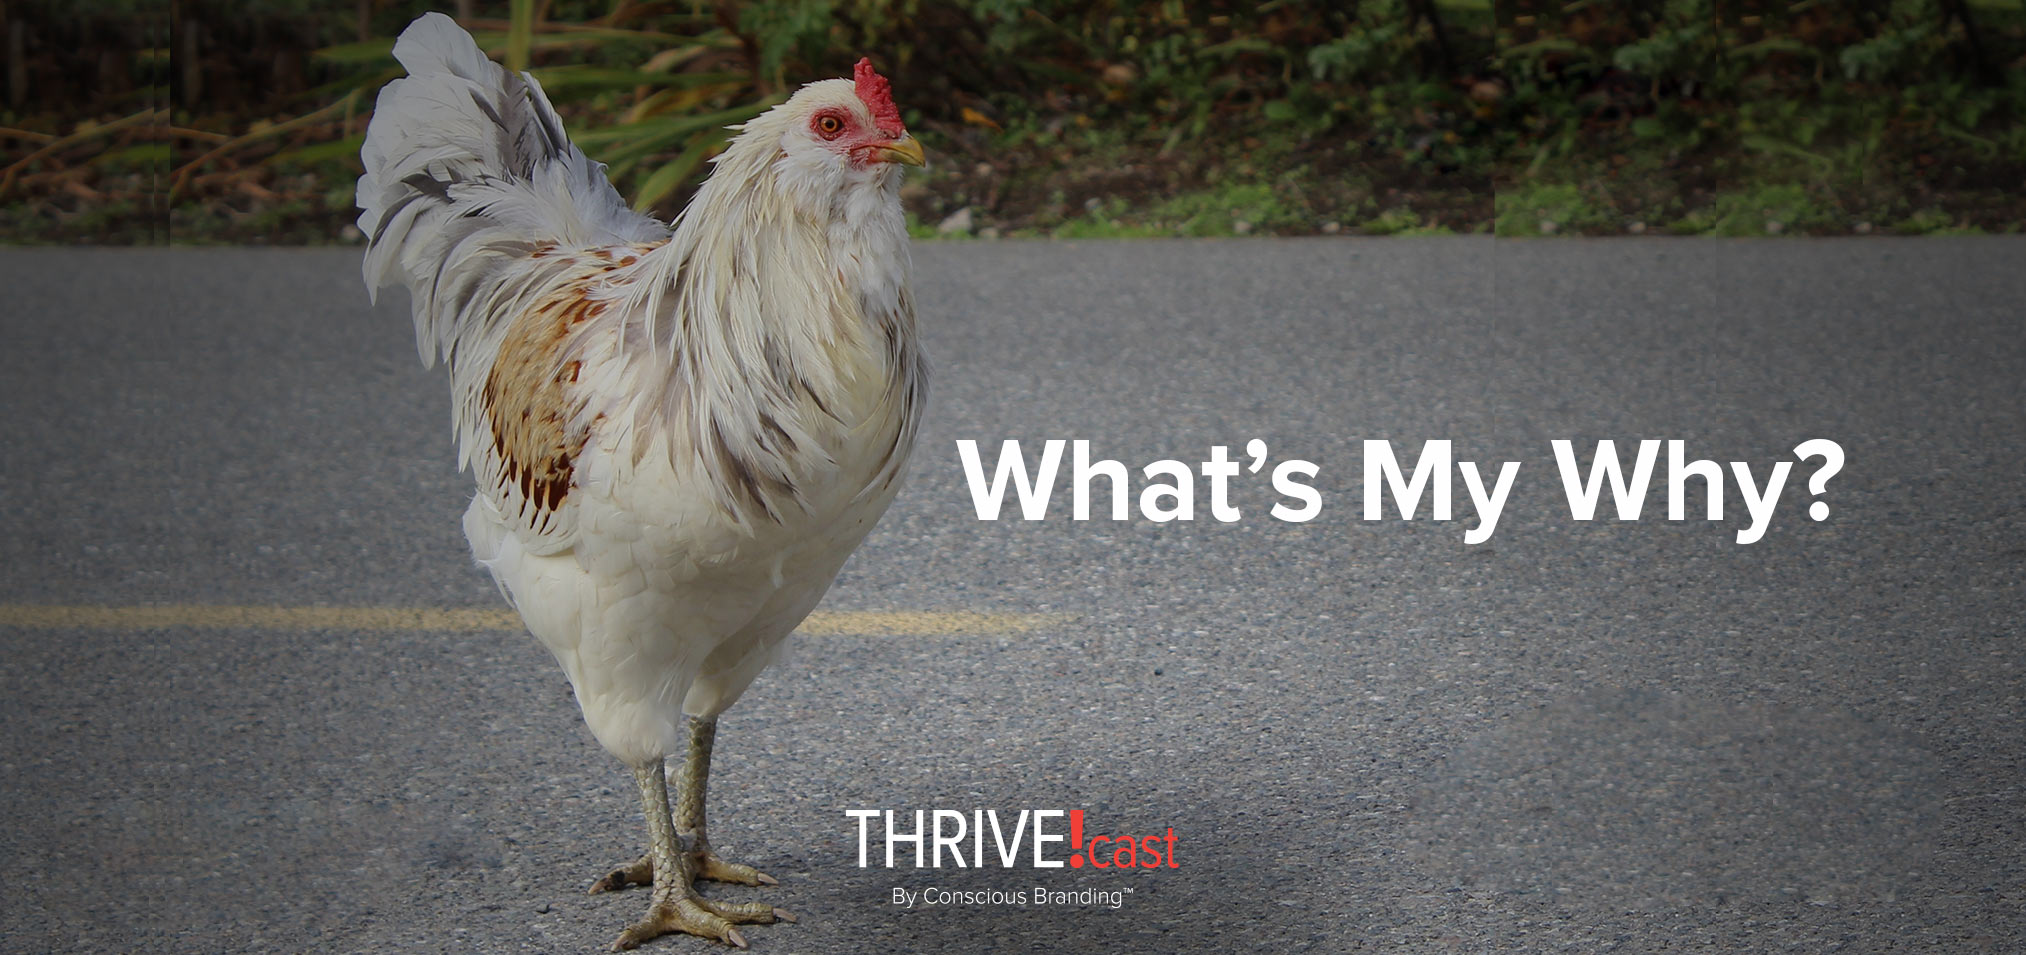 Thrivecast - Whats My Why